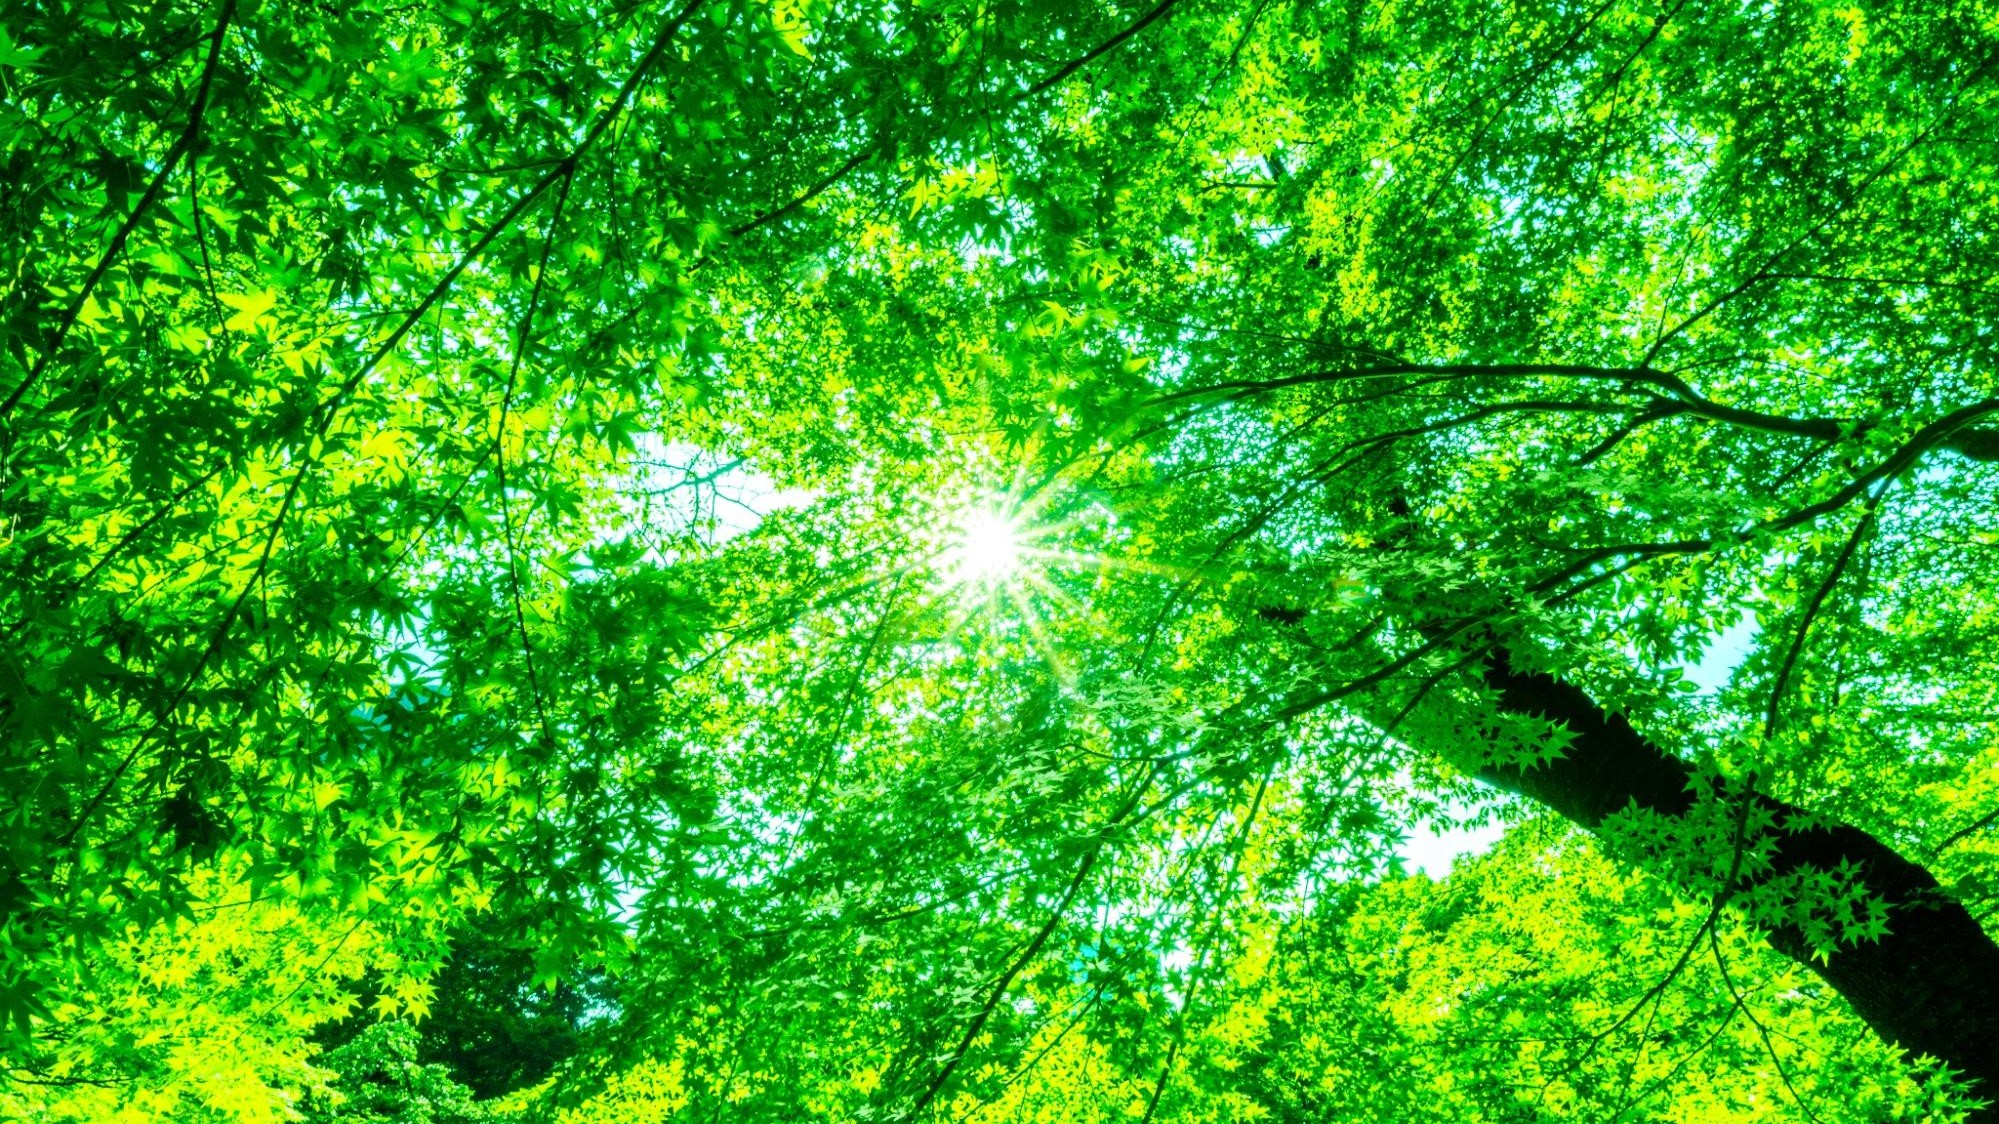 Eating the Sun: Can Humans Be Hacked to Do Photosynthesis?